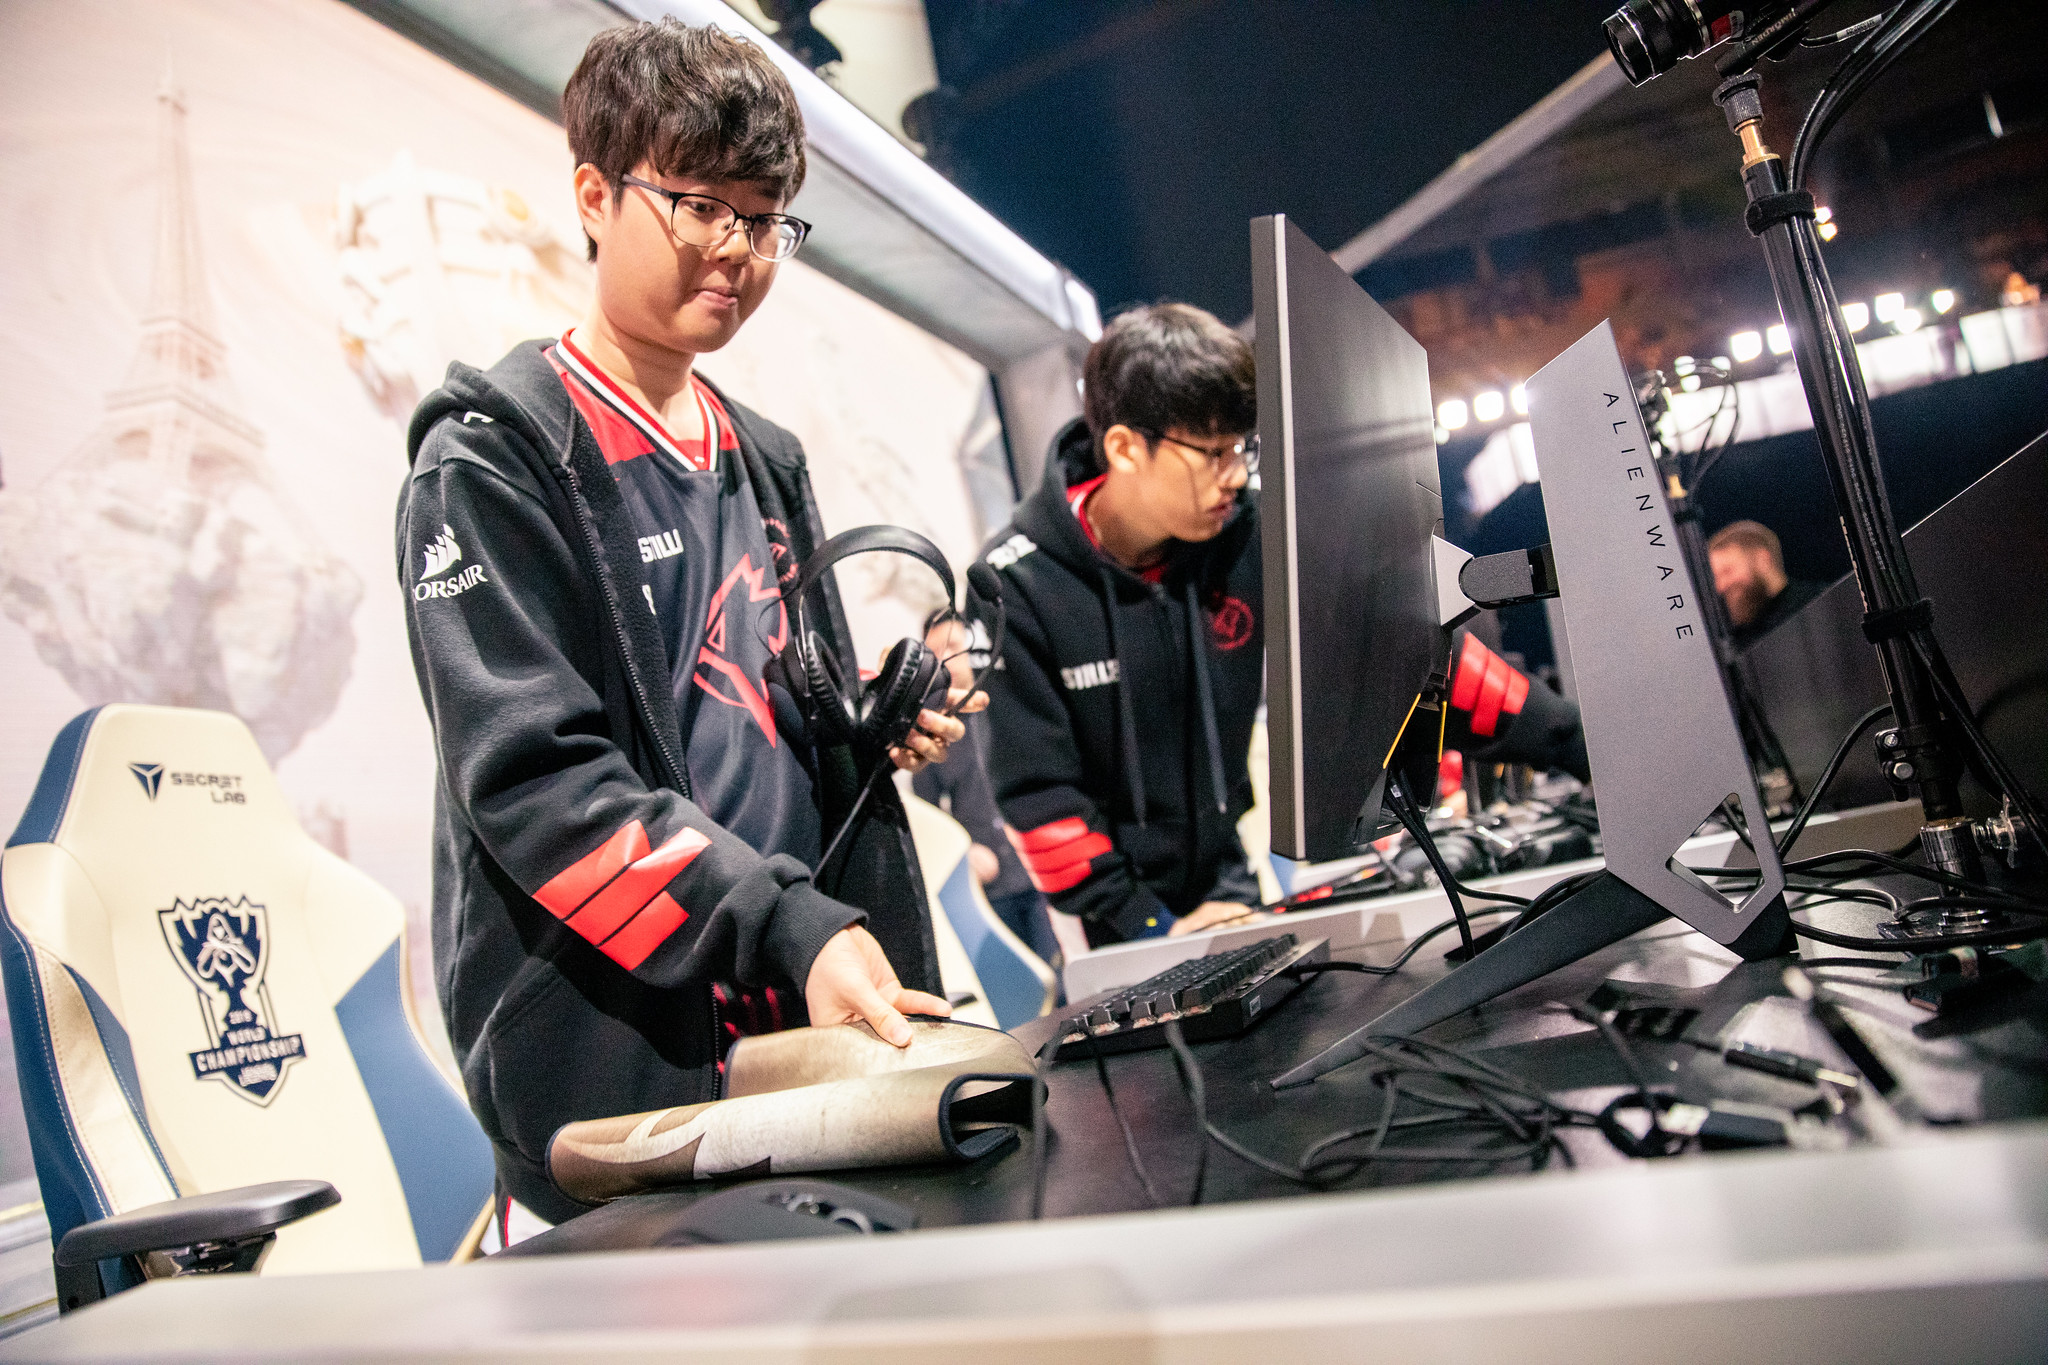 Sword at Worlds 2019 playing for Griffin